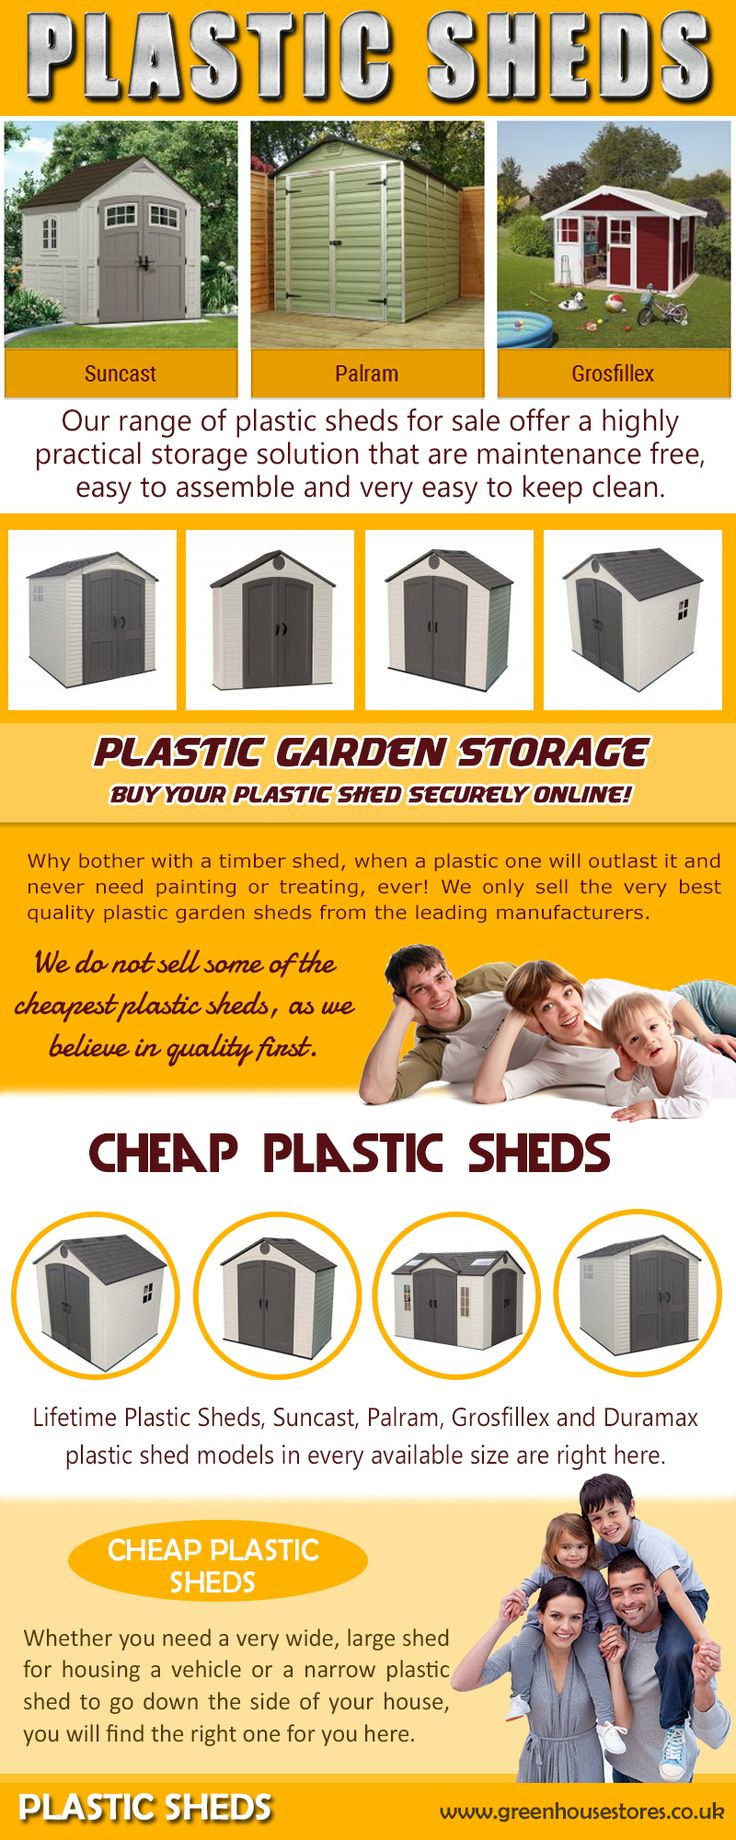 We only sell the very best quality plastic garden sheds from the leading manufacturers. We do not sell some of the cheapest plastic sheds, as we believe in quality first. Why buy a cheap plastic shed that won't last? You will only find tried and tested top brand plastic sheds. Our range of Plastic Sheds for sale offer a highly practical storage solution that are maintenance free, easy to assemble and very easy to keep clean.